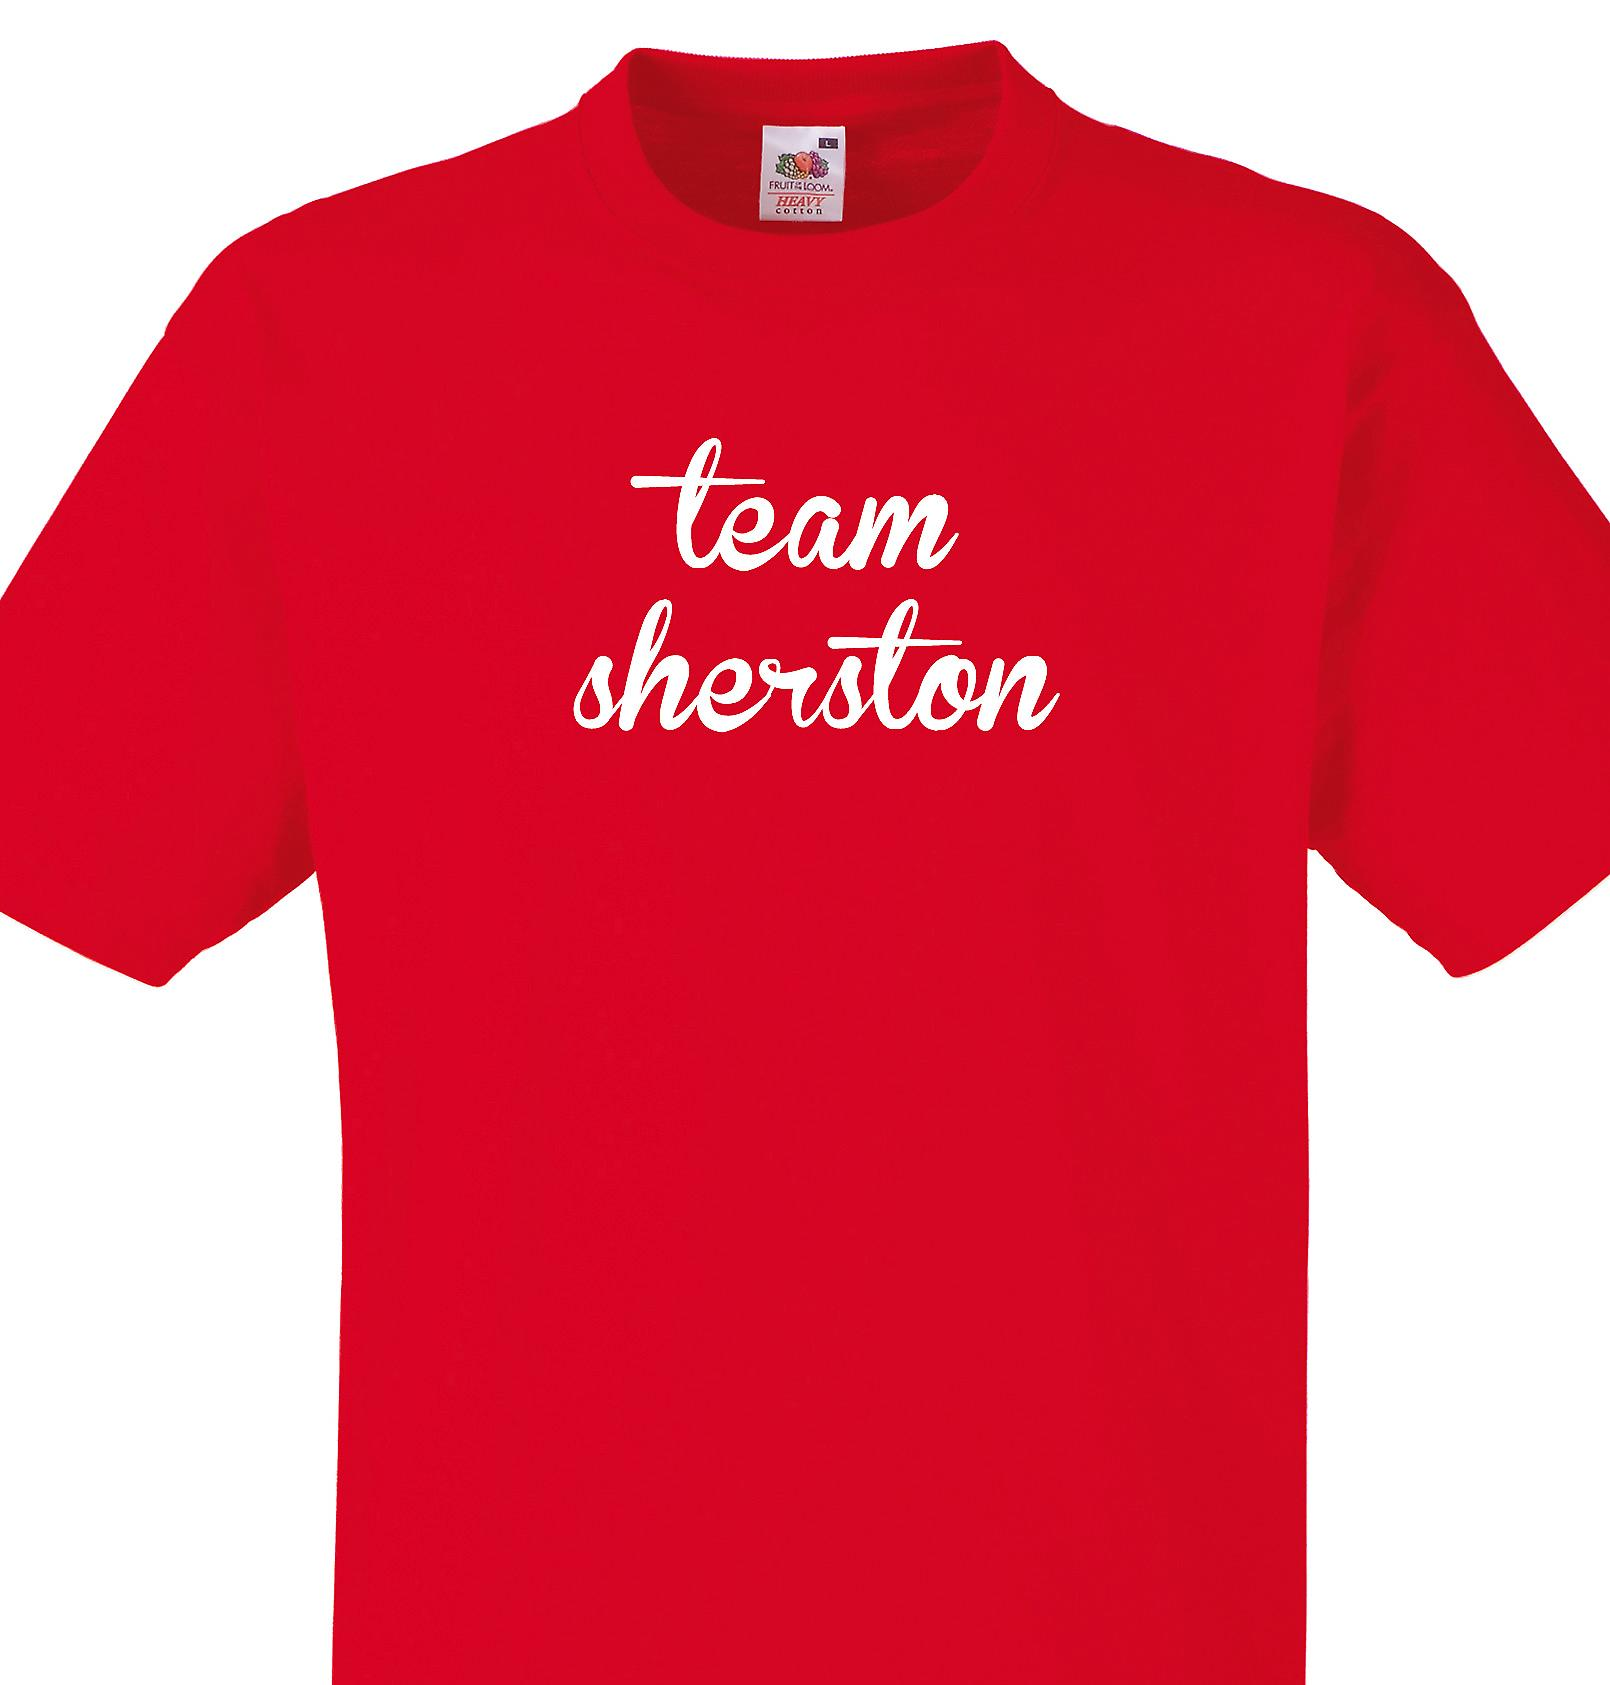 Team Sherston Red T shirt